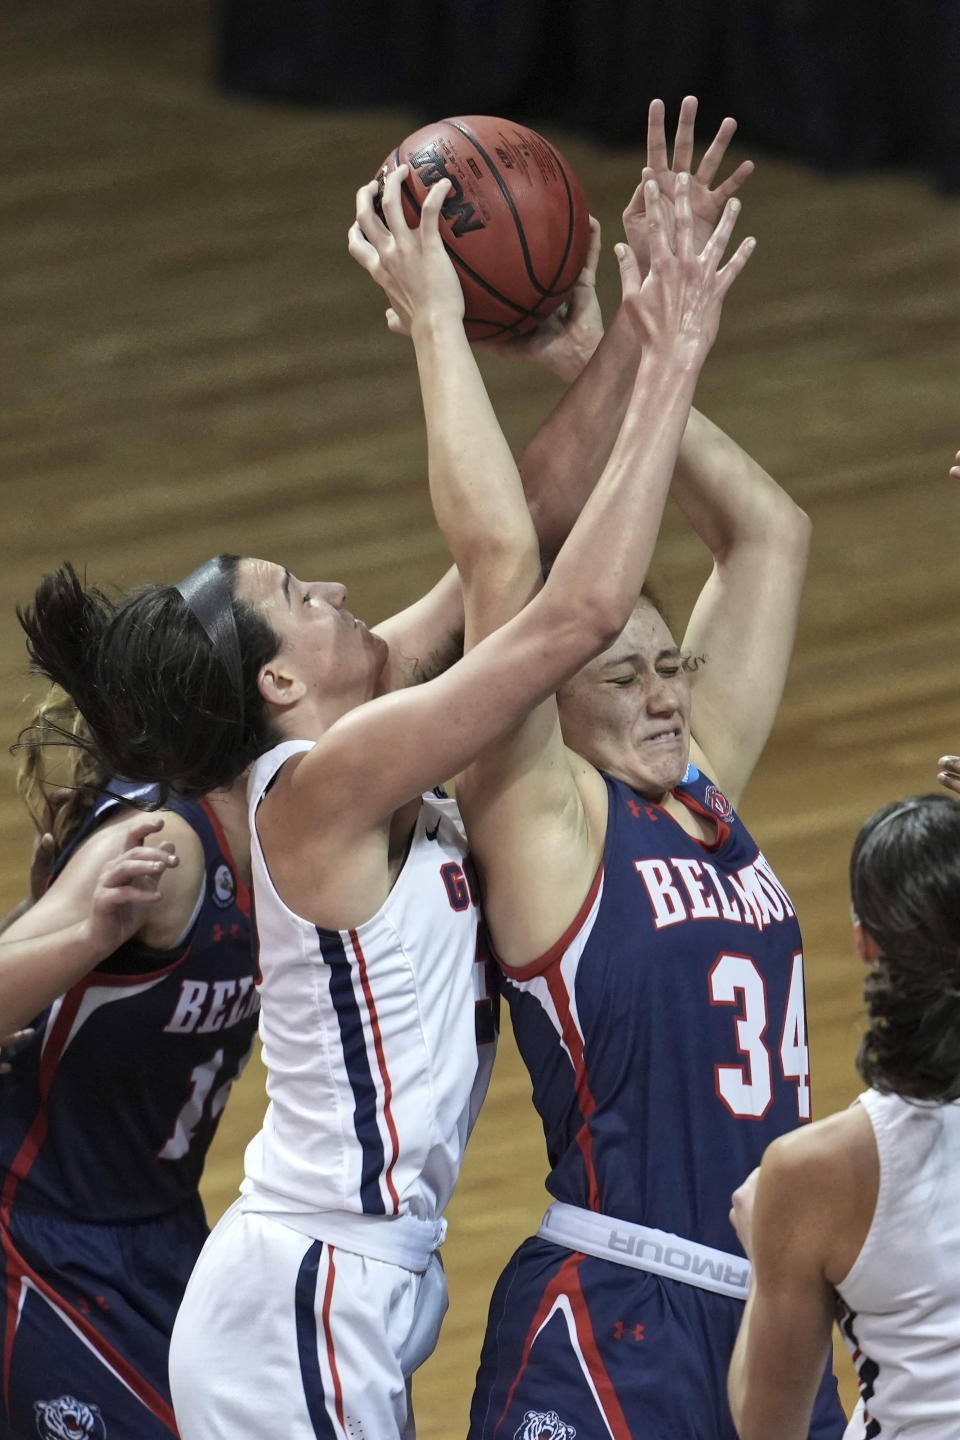 Belmont's Cam Browning (34) and Gonzaga's Jenn Wirth (3) reach for a rebound during the second half of a college basketball game in the first round of the NCAA women's tournament at University Events Center in San Marcos, Texas, Monday, March 22, 2021. (AP Photo/Chuck Burton)